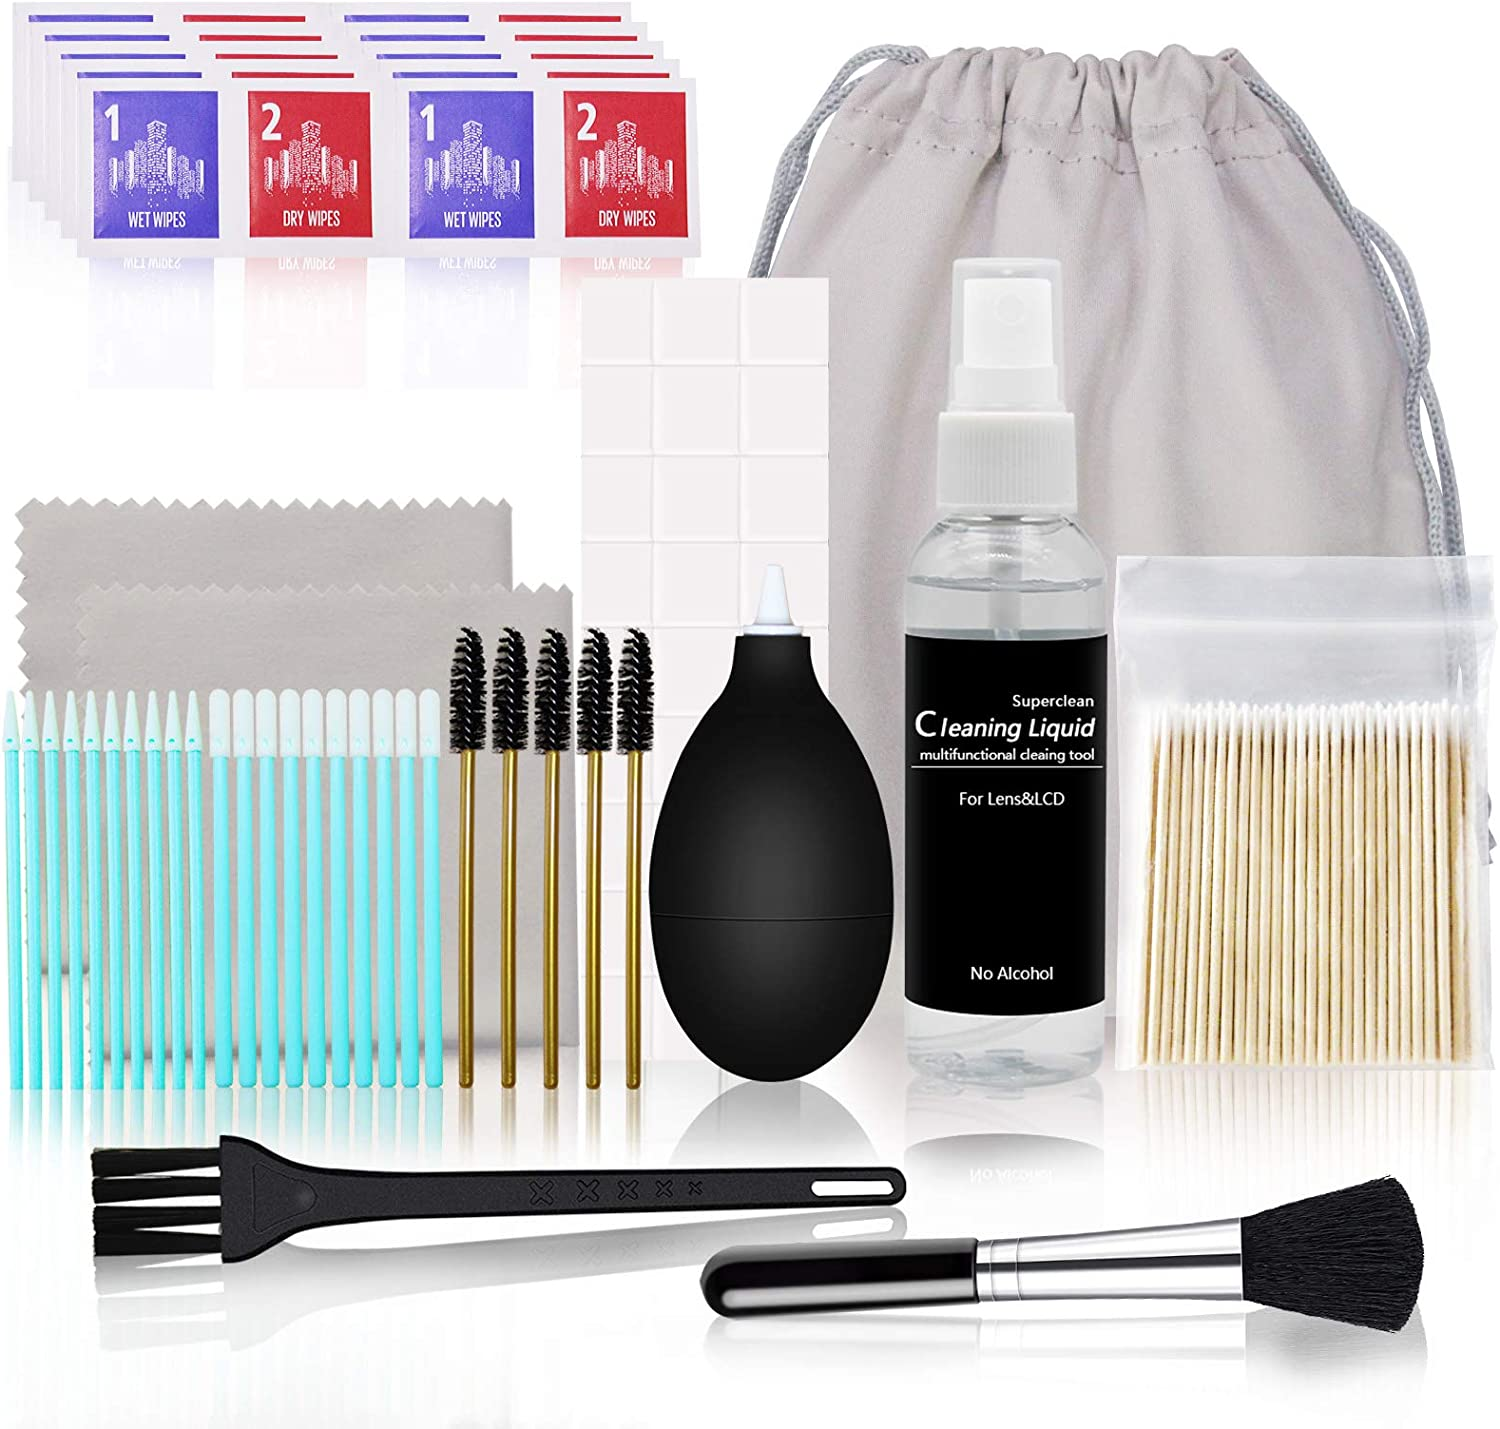 Updated 143 Pcs Cleaning Kit, Professional Cleaner Tool Set for Airpods Screen and Other Electronic Devices, Compatible with Airpods/Airpods pro/Earphones/Smartphones